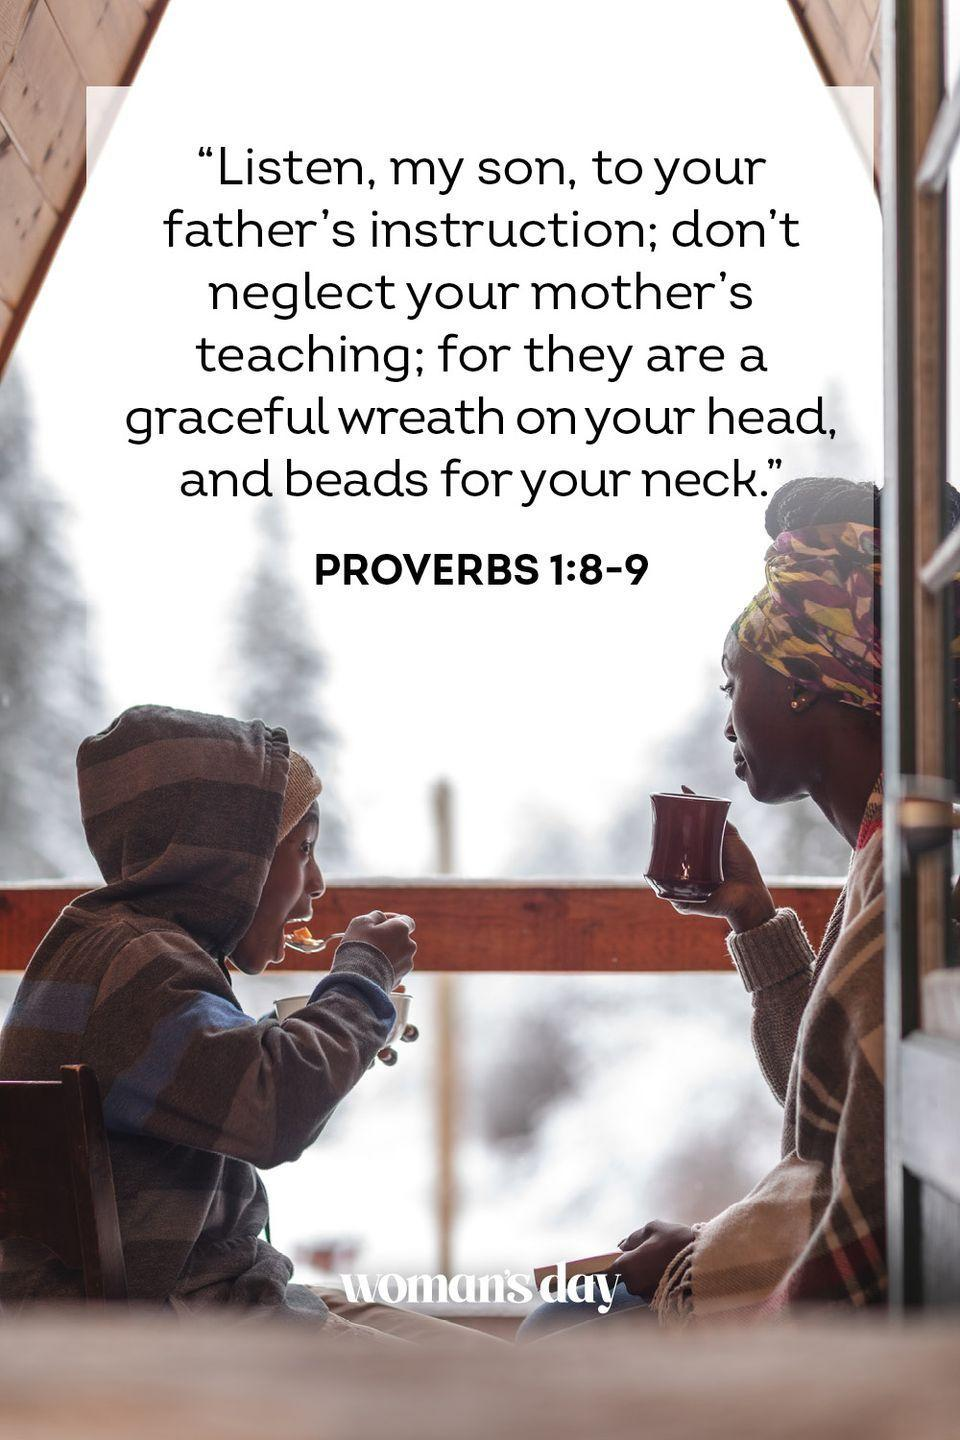 "<p>""Listen, my son, to your father's instruction; don't neglect your mother's teaching; for they are a graceful wreath on your head, and beads for your neck.""</p><p><strong>The Good News: </strong>Though we may not see it when we're young, a mother's teachings should be held close to the heart.</p>"